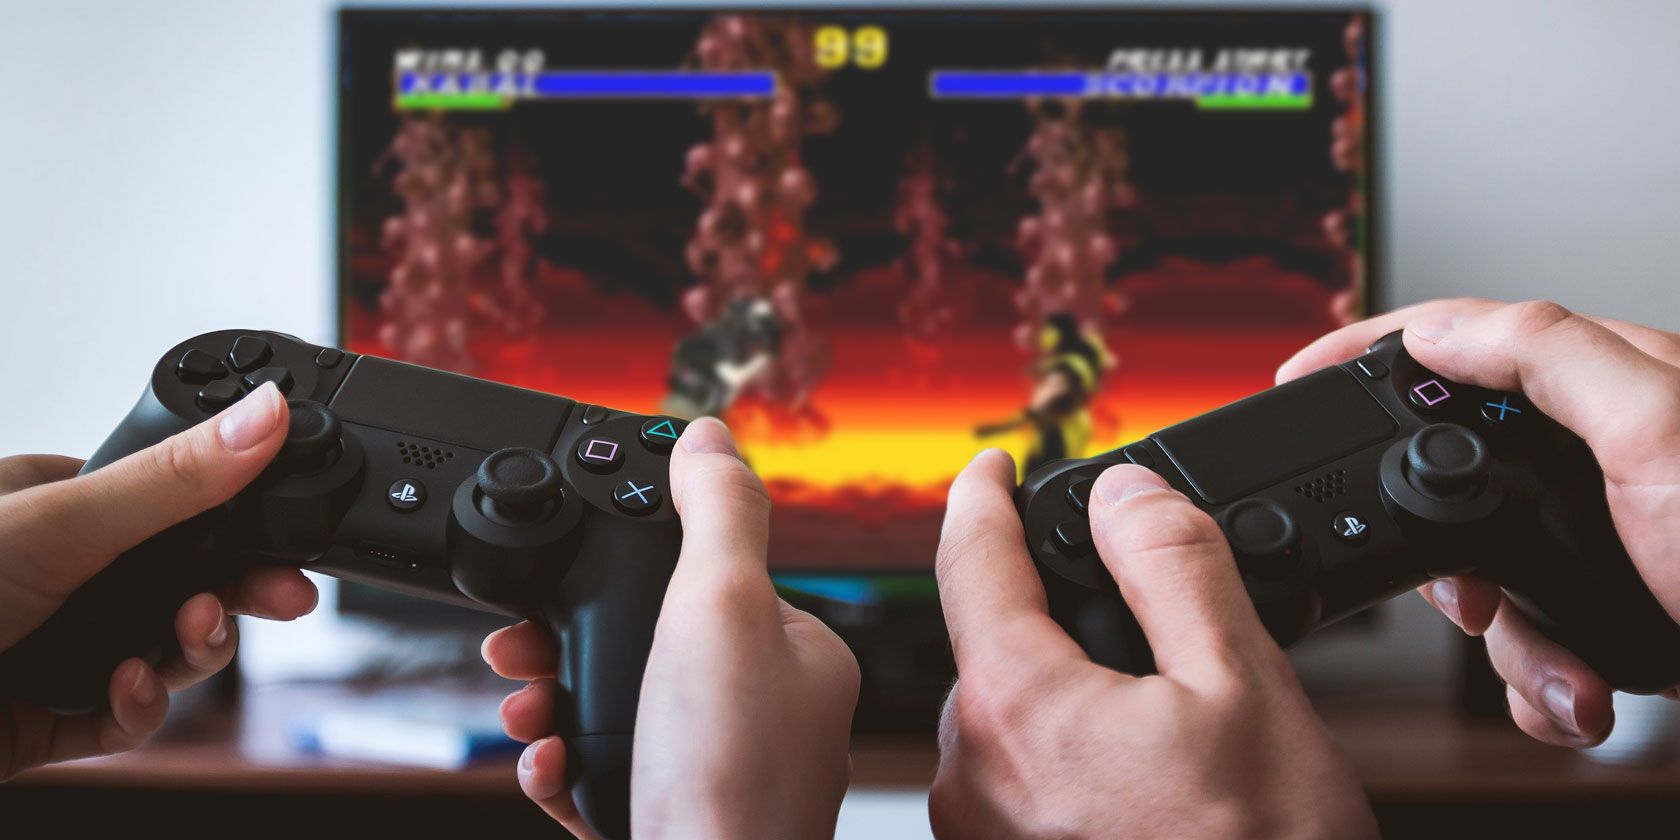 playstation 4 controllers play retro video games